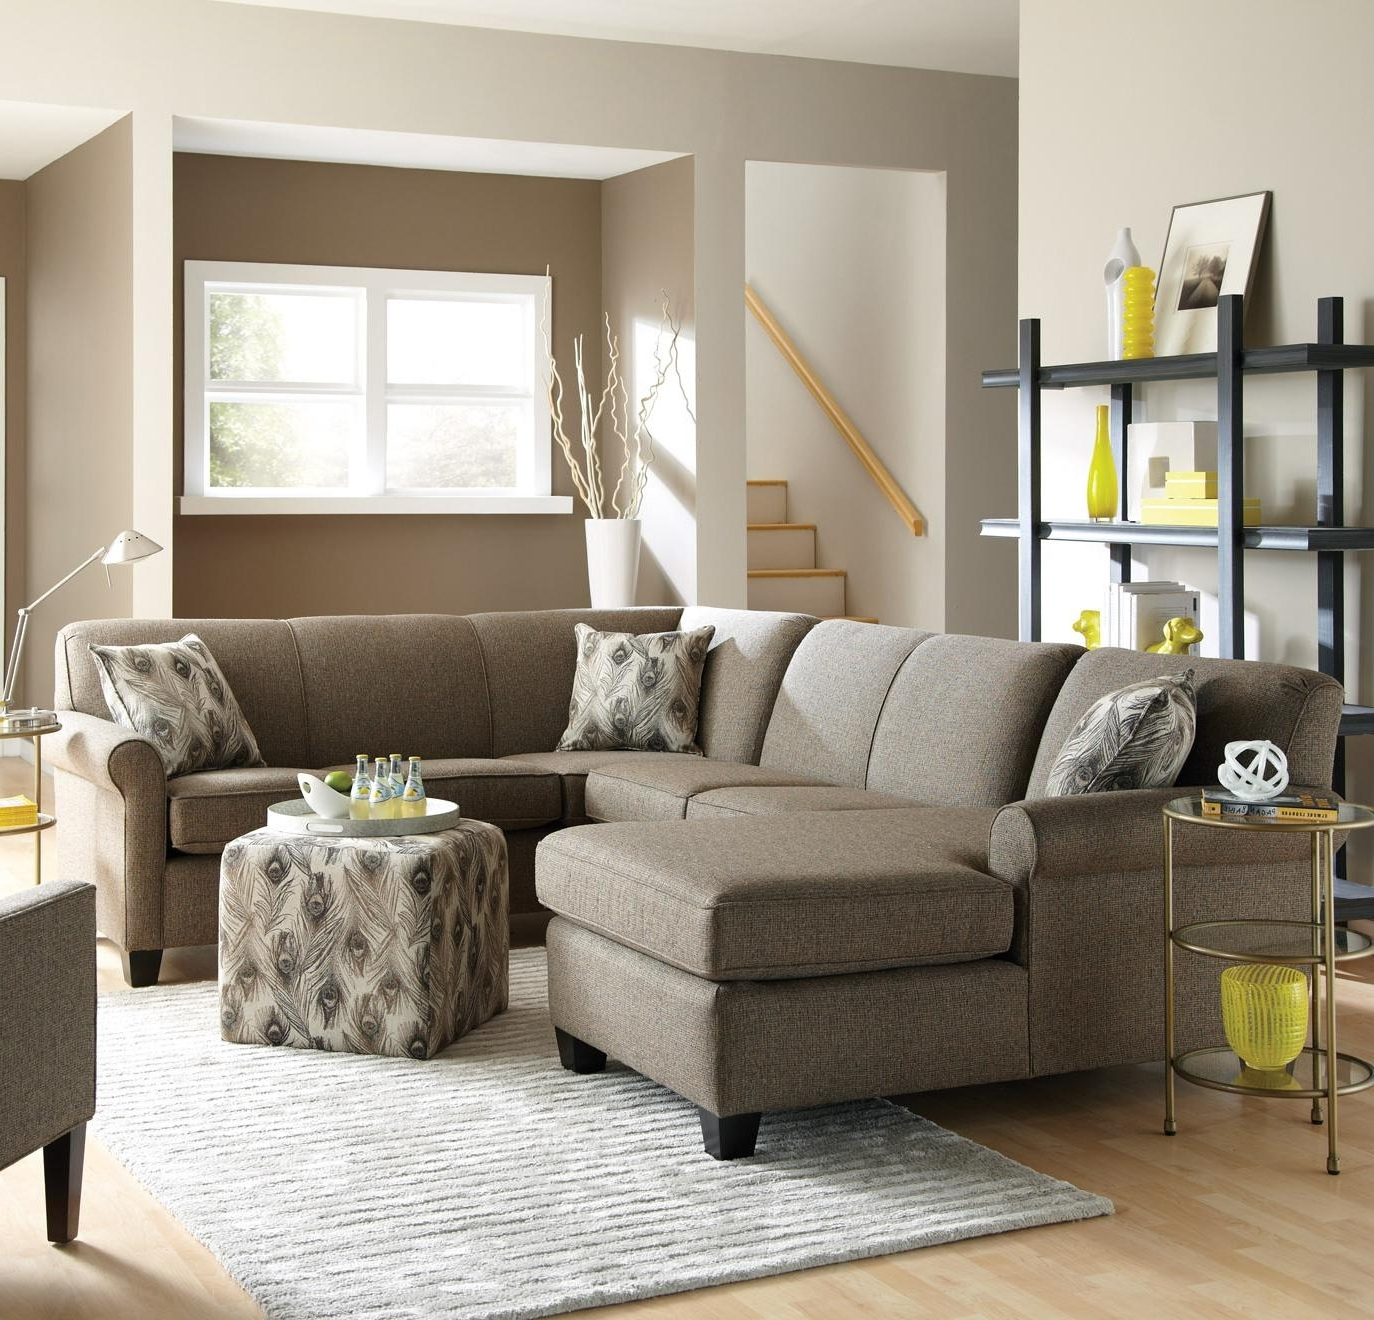 Recent England Angie Long Sectional Sofa With Chaise – Ahfa – Sofa Throughout England Sectional Sofas (View 15 of 15)